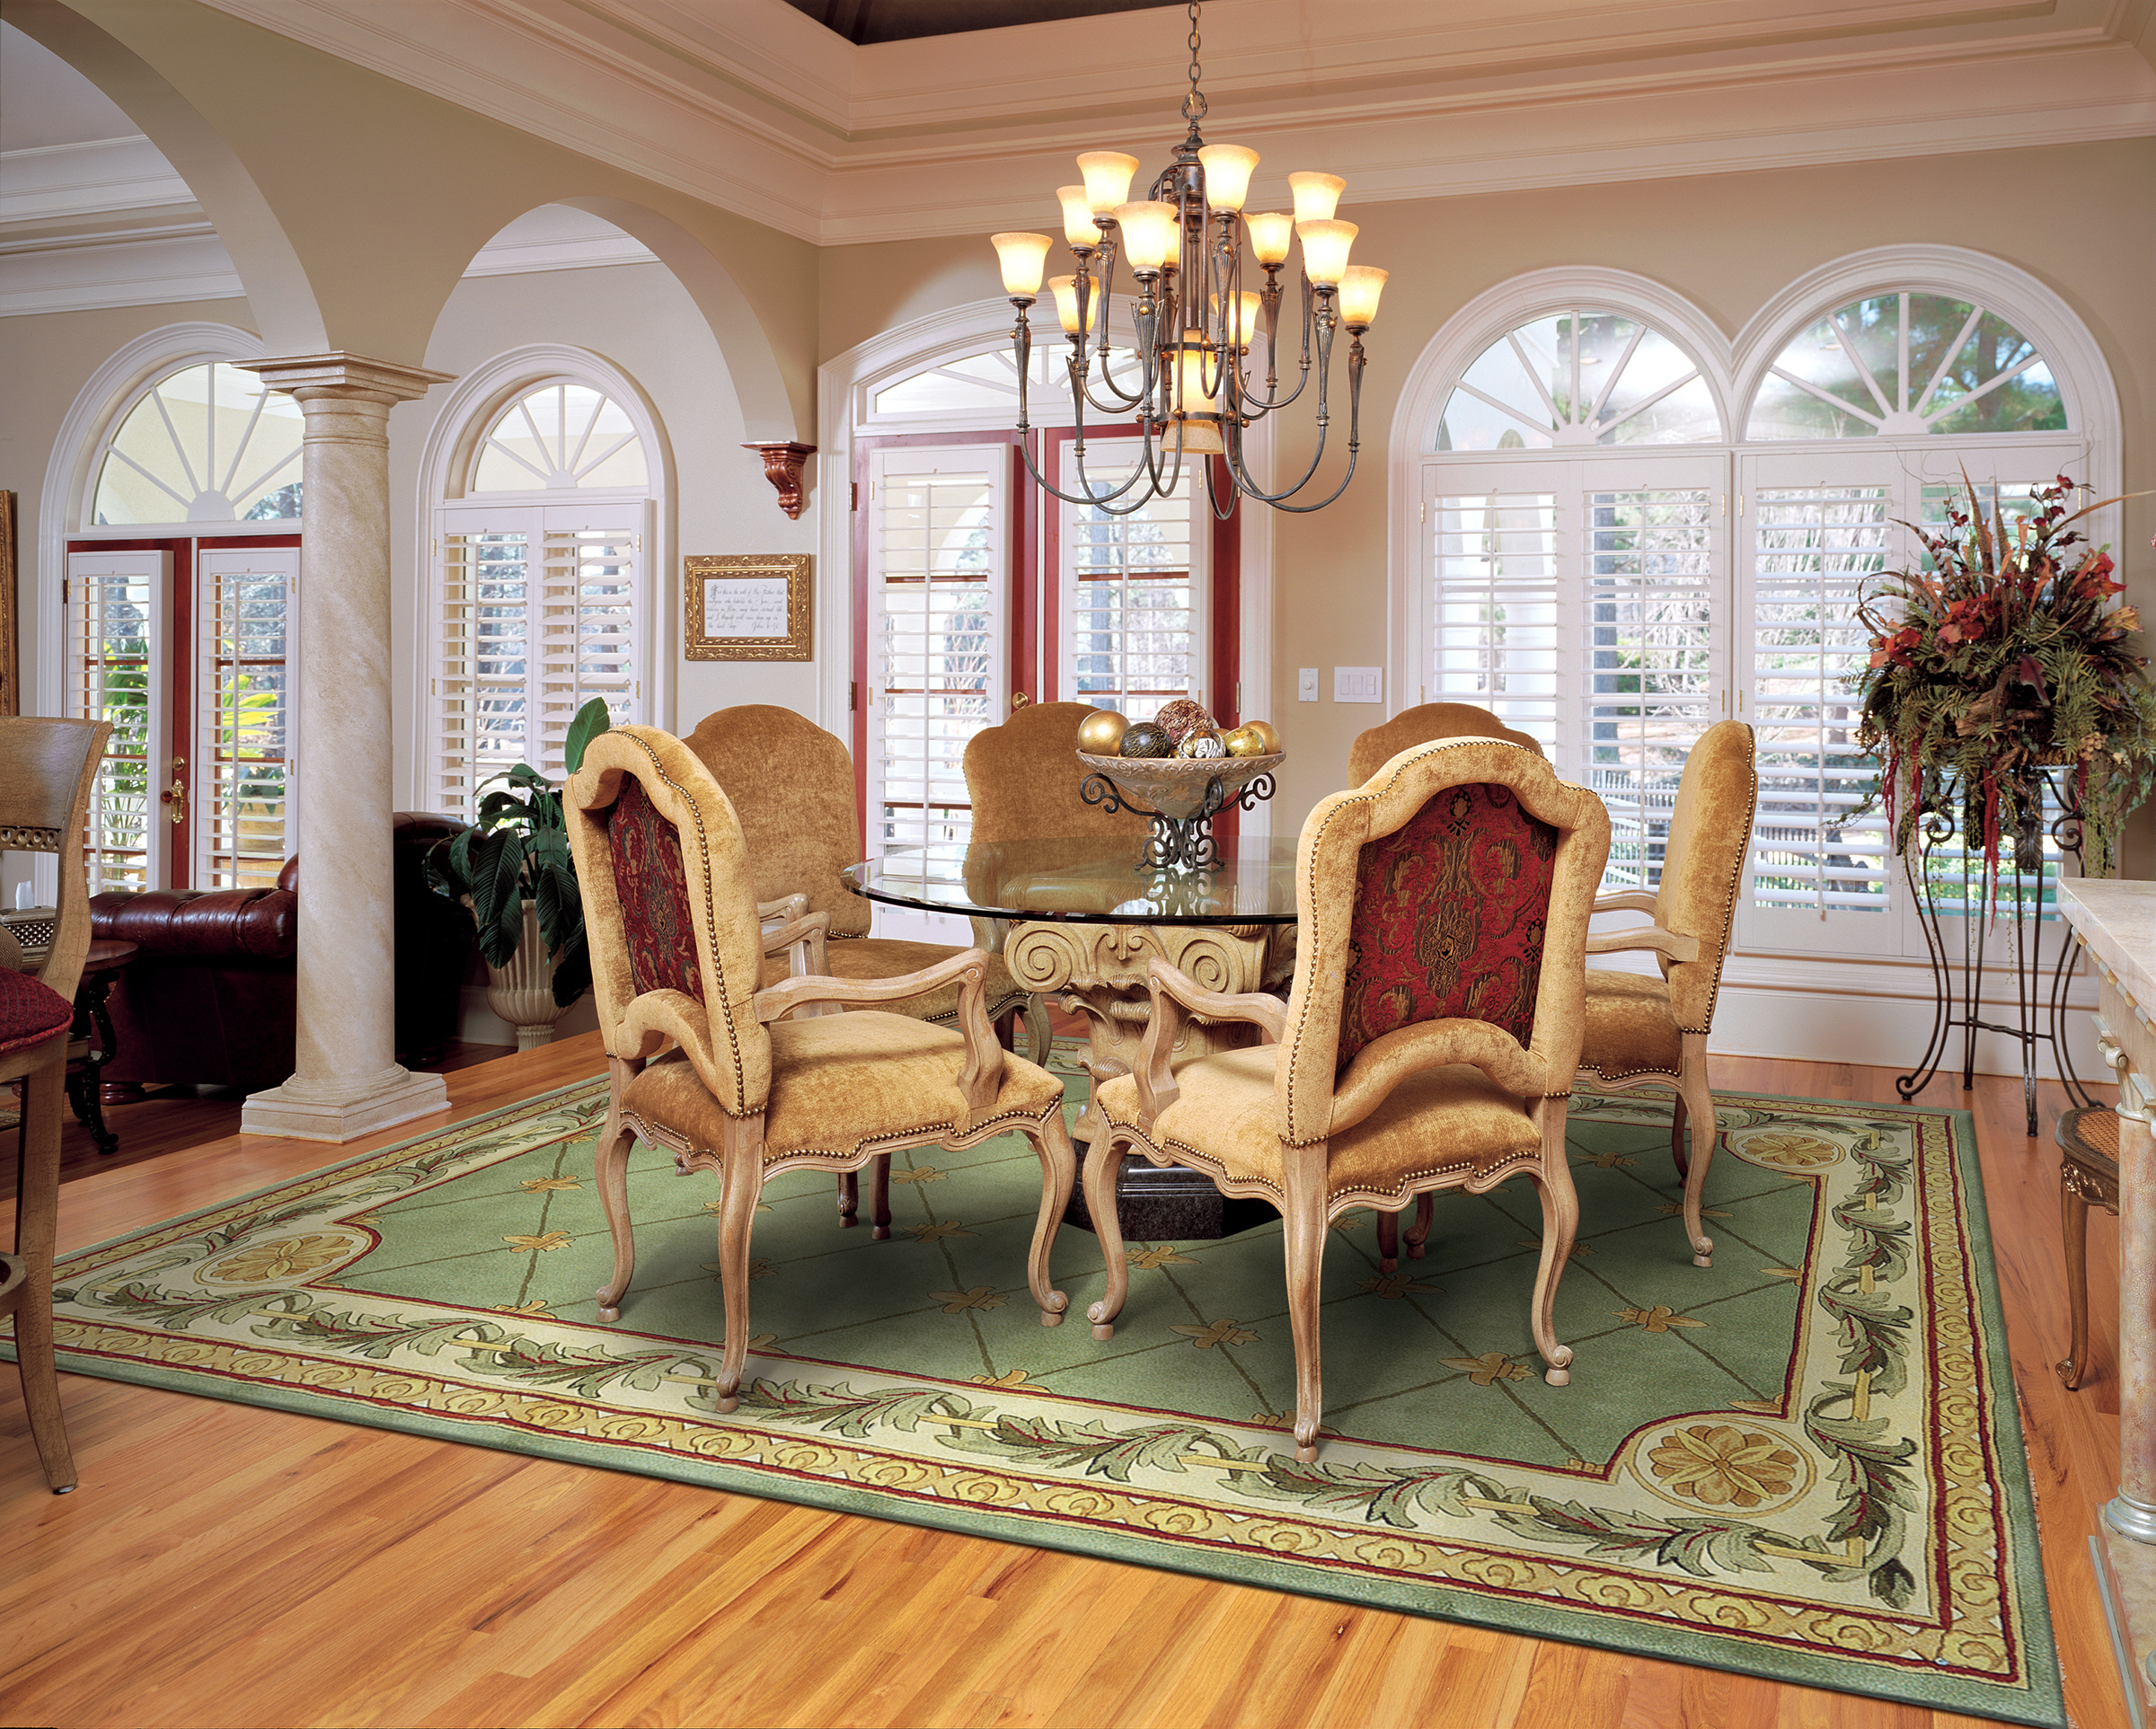 dining power for table decor vivid calls their decorating a the style showcase that rugs rug in victorian room under